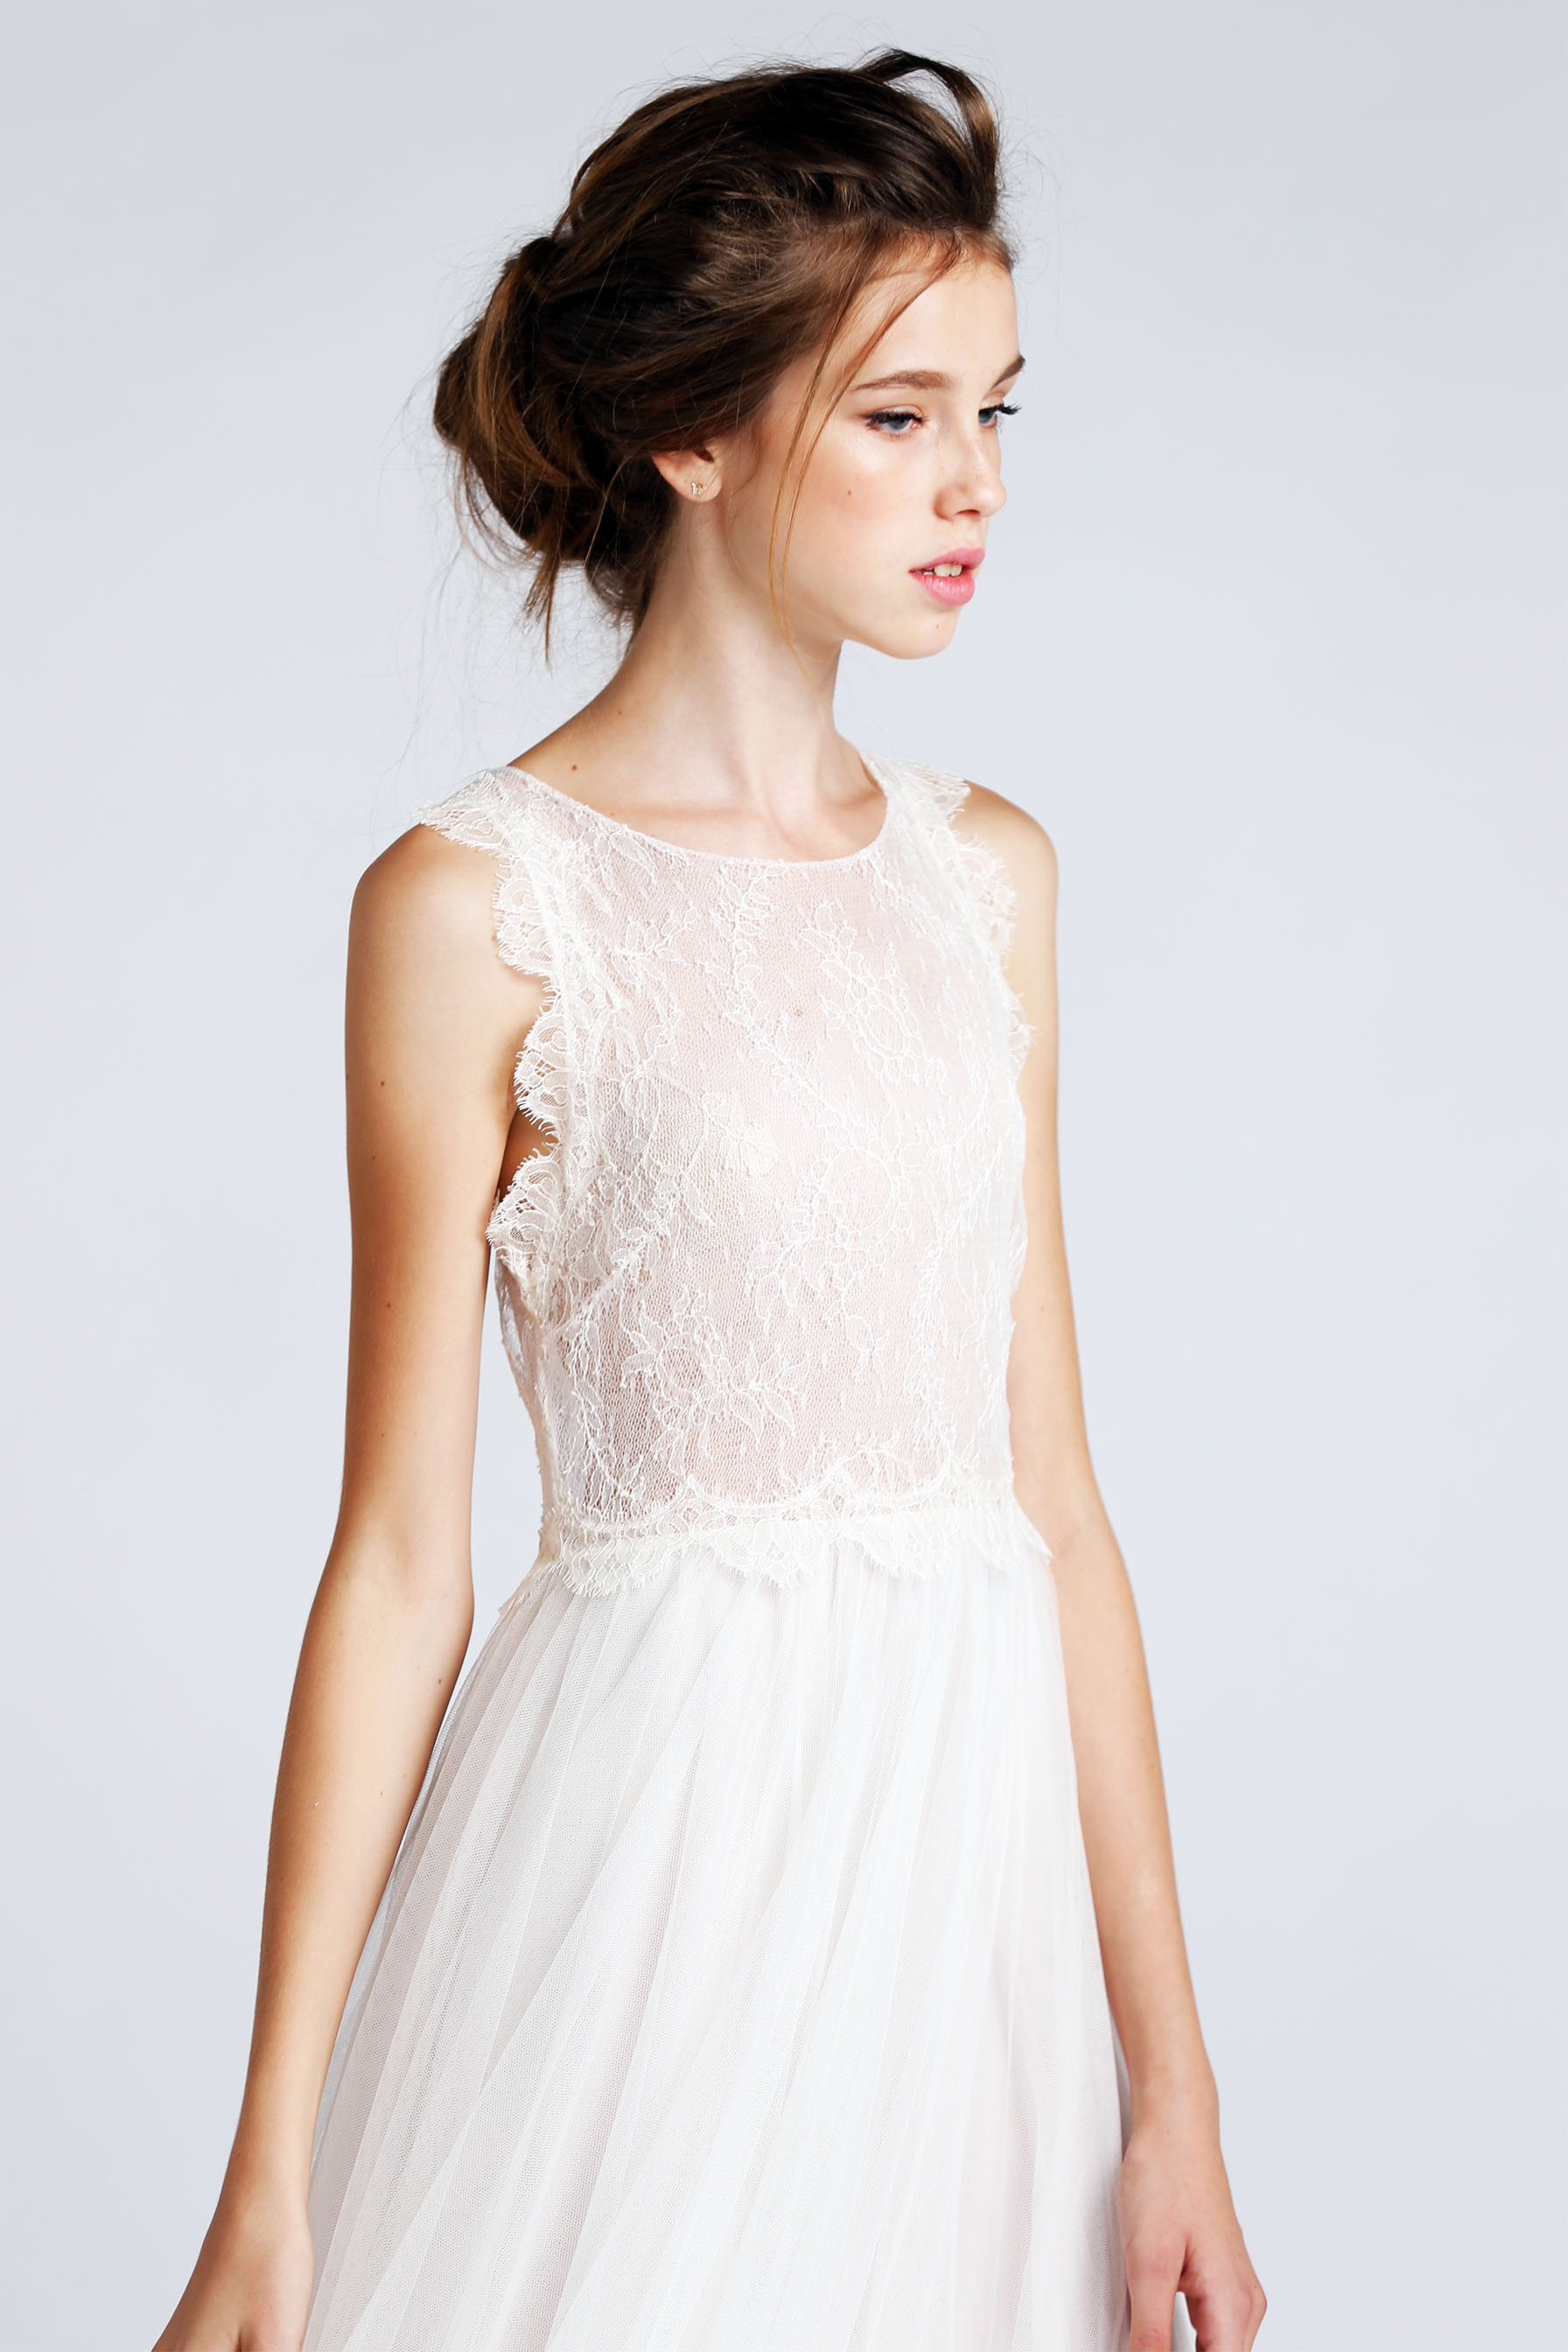 B Ready: Wedding Gowns up to 5,500 NIS